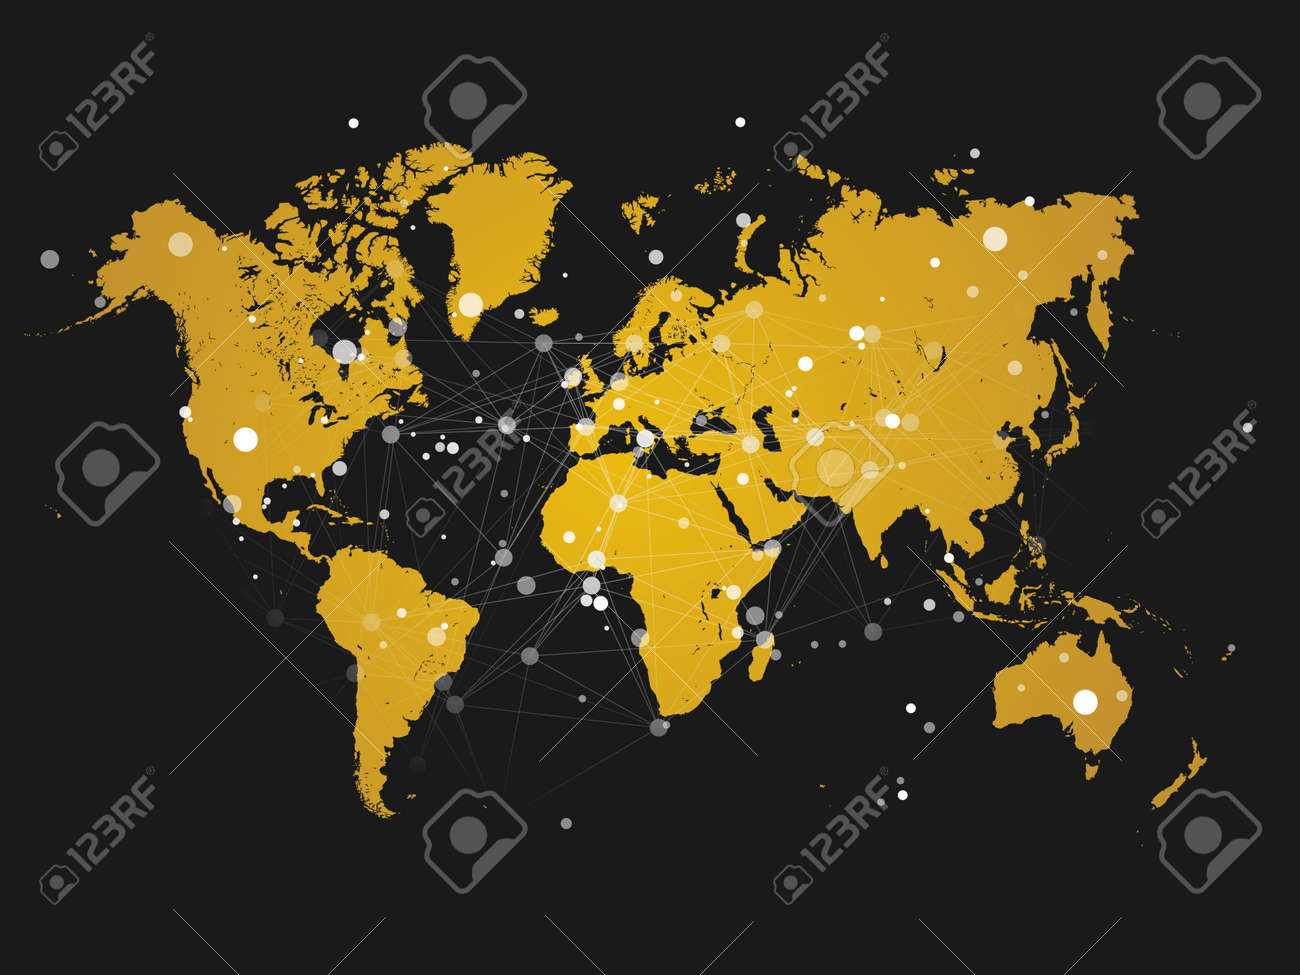 World map silhouette with connection grid vector illustration vector world map silhouette with connection grid vector illustration background network concept design gumiabroncs Image collections